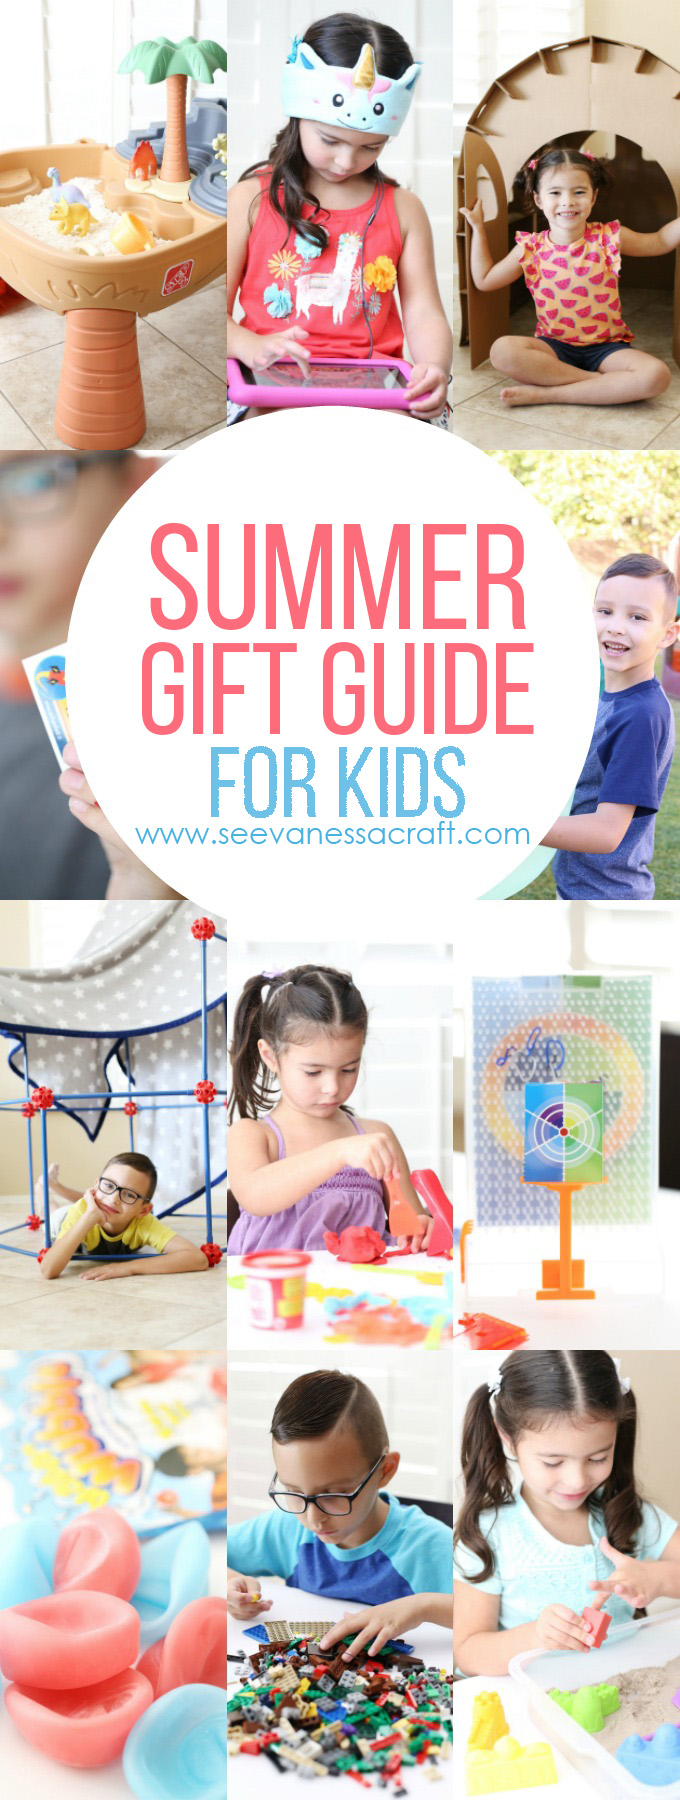 Summer Gift Guide copy